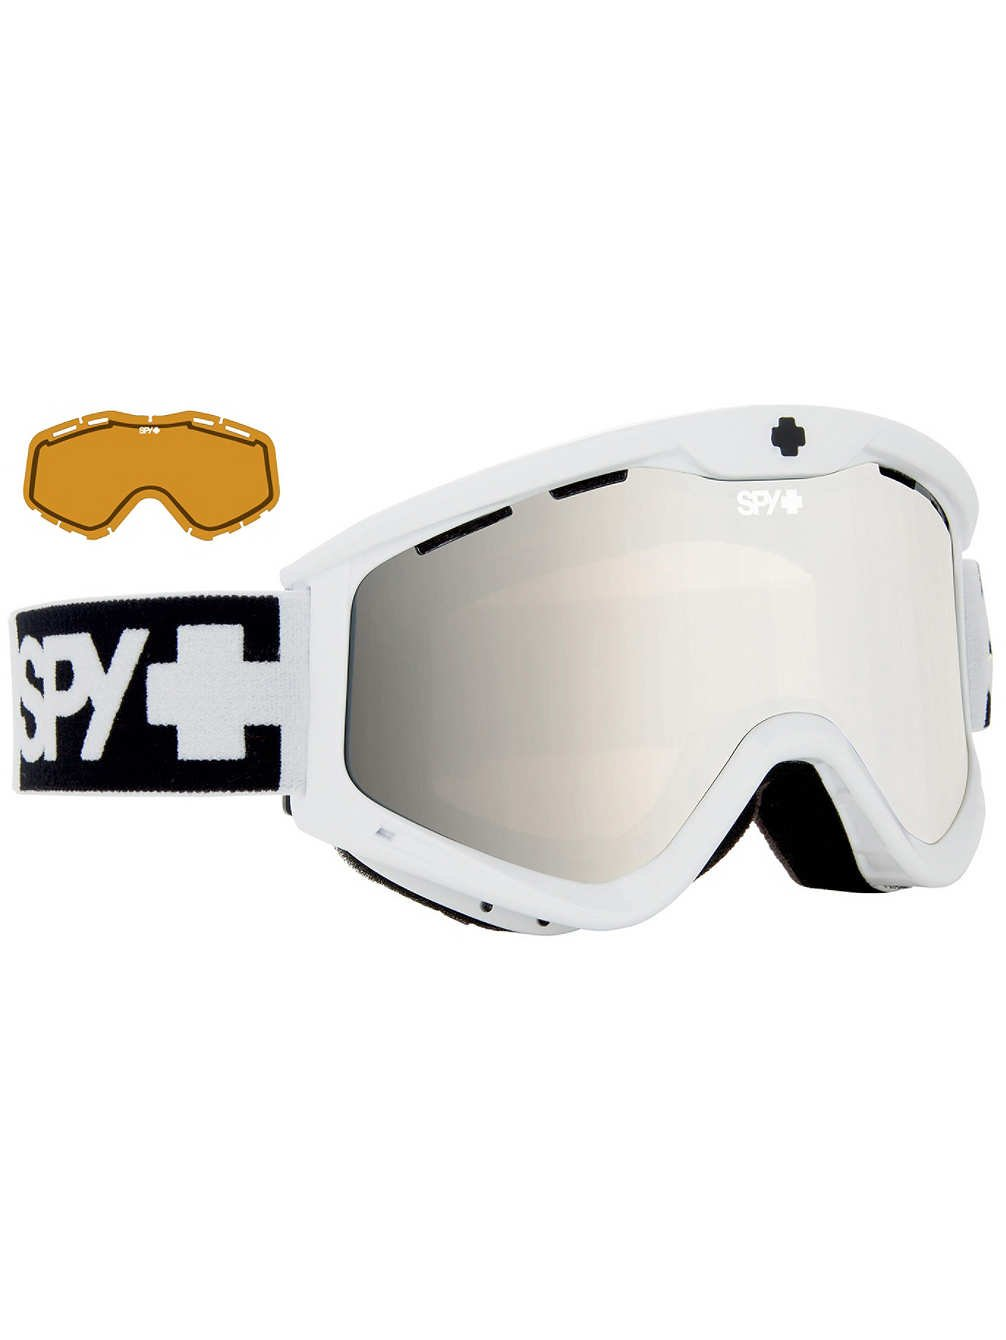 Spy Optic White T3 Winter Sport Racing Snowmobile Goggles, Bronze w/ Silver Mirror + Persimmon, One Size by Spy